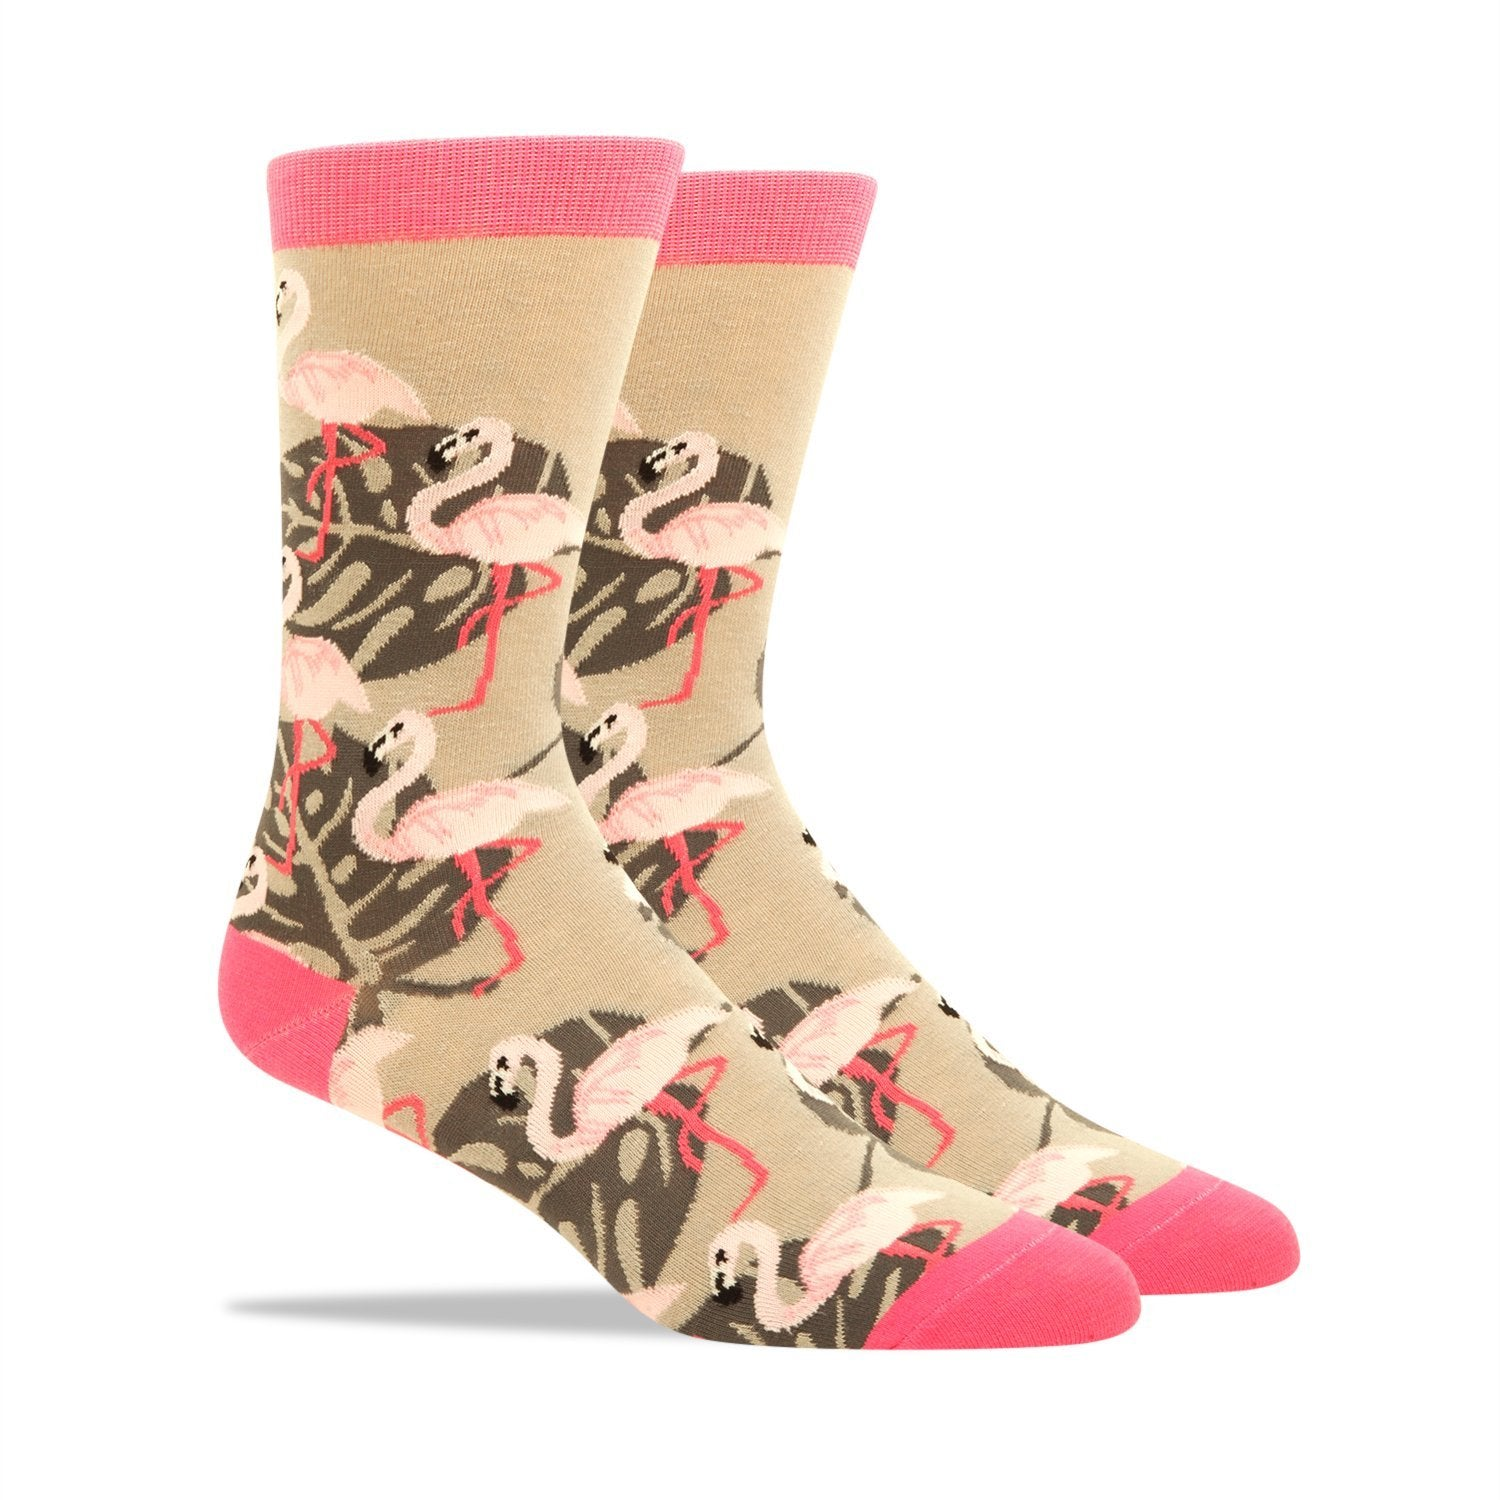 Flamingo Men's Socks